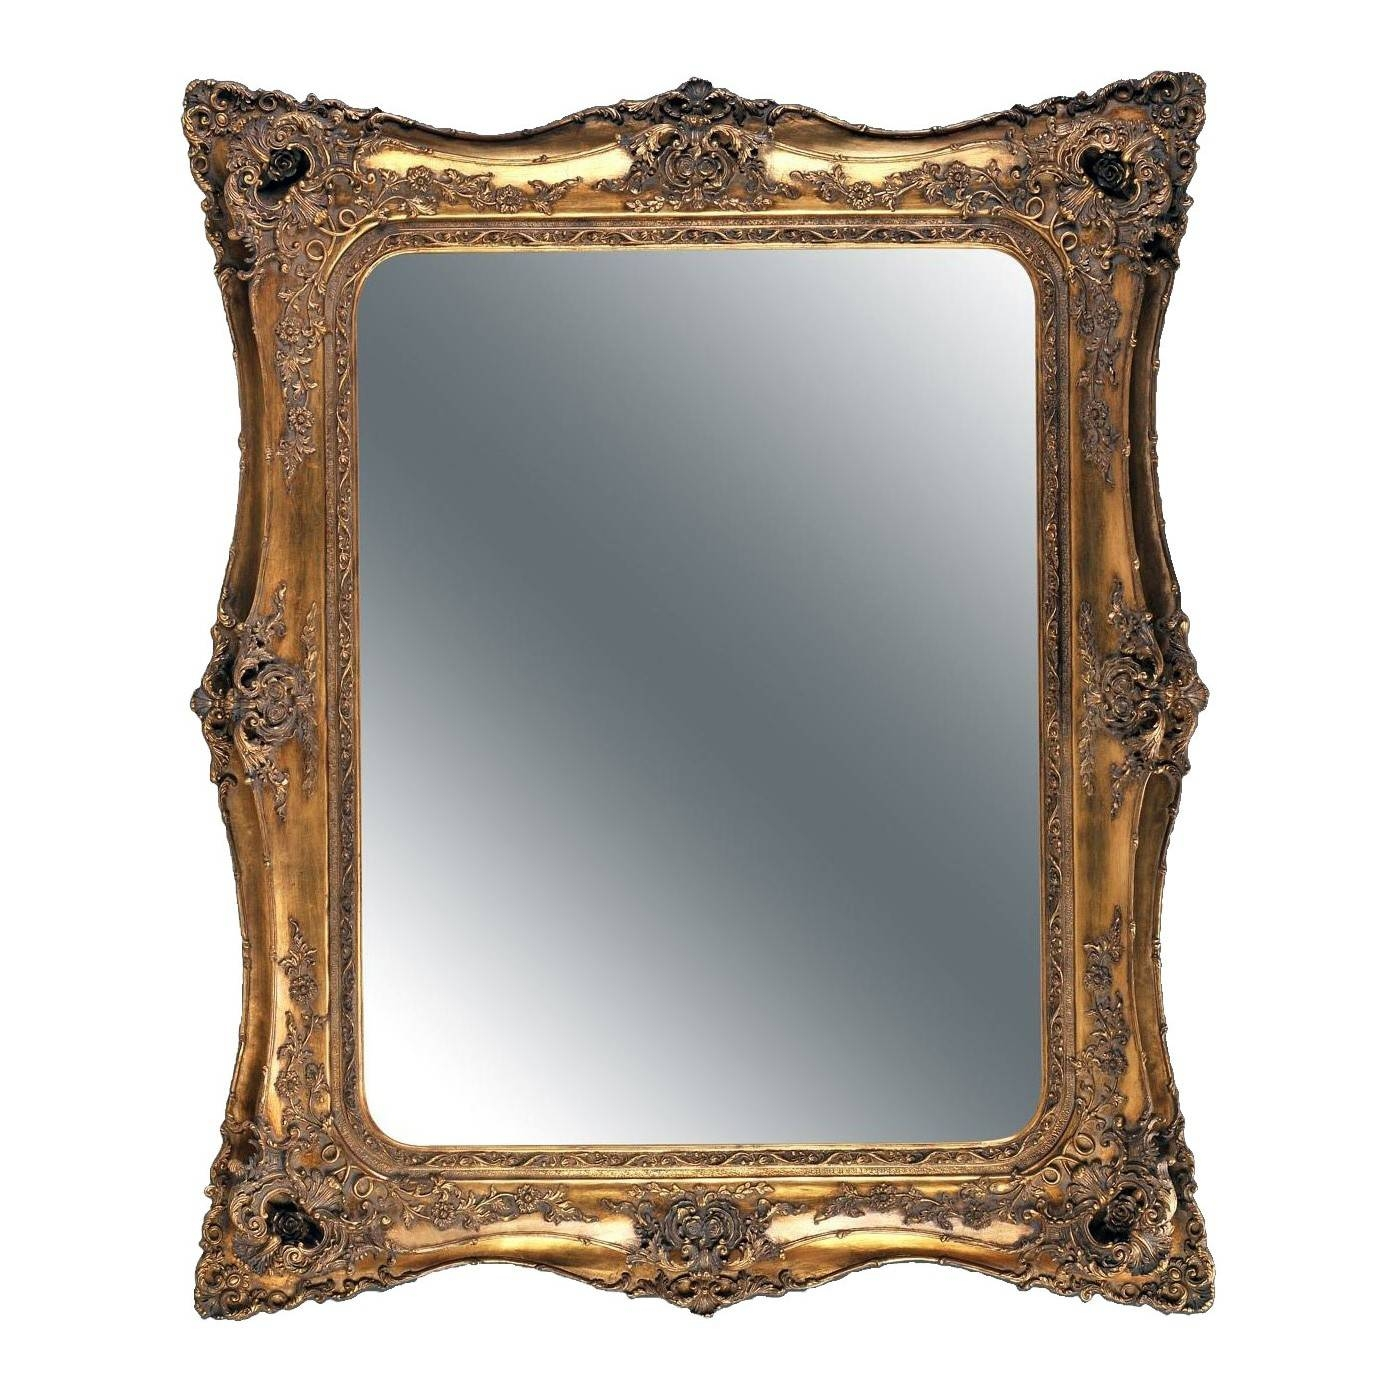 Double Level Ornate Mirror In Gold pertaining to Gold Ornate Mirrors (Image 7 of 25)